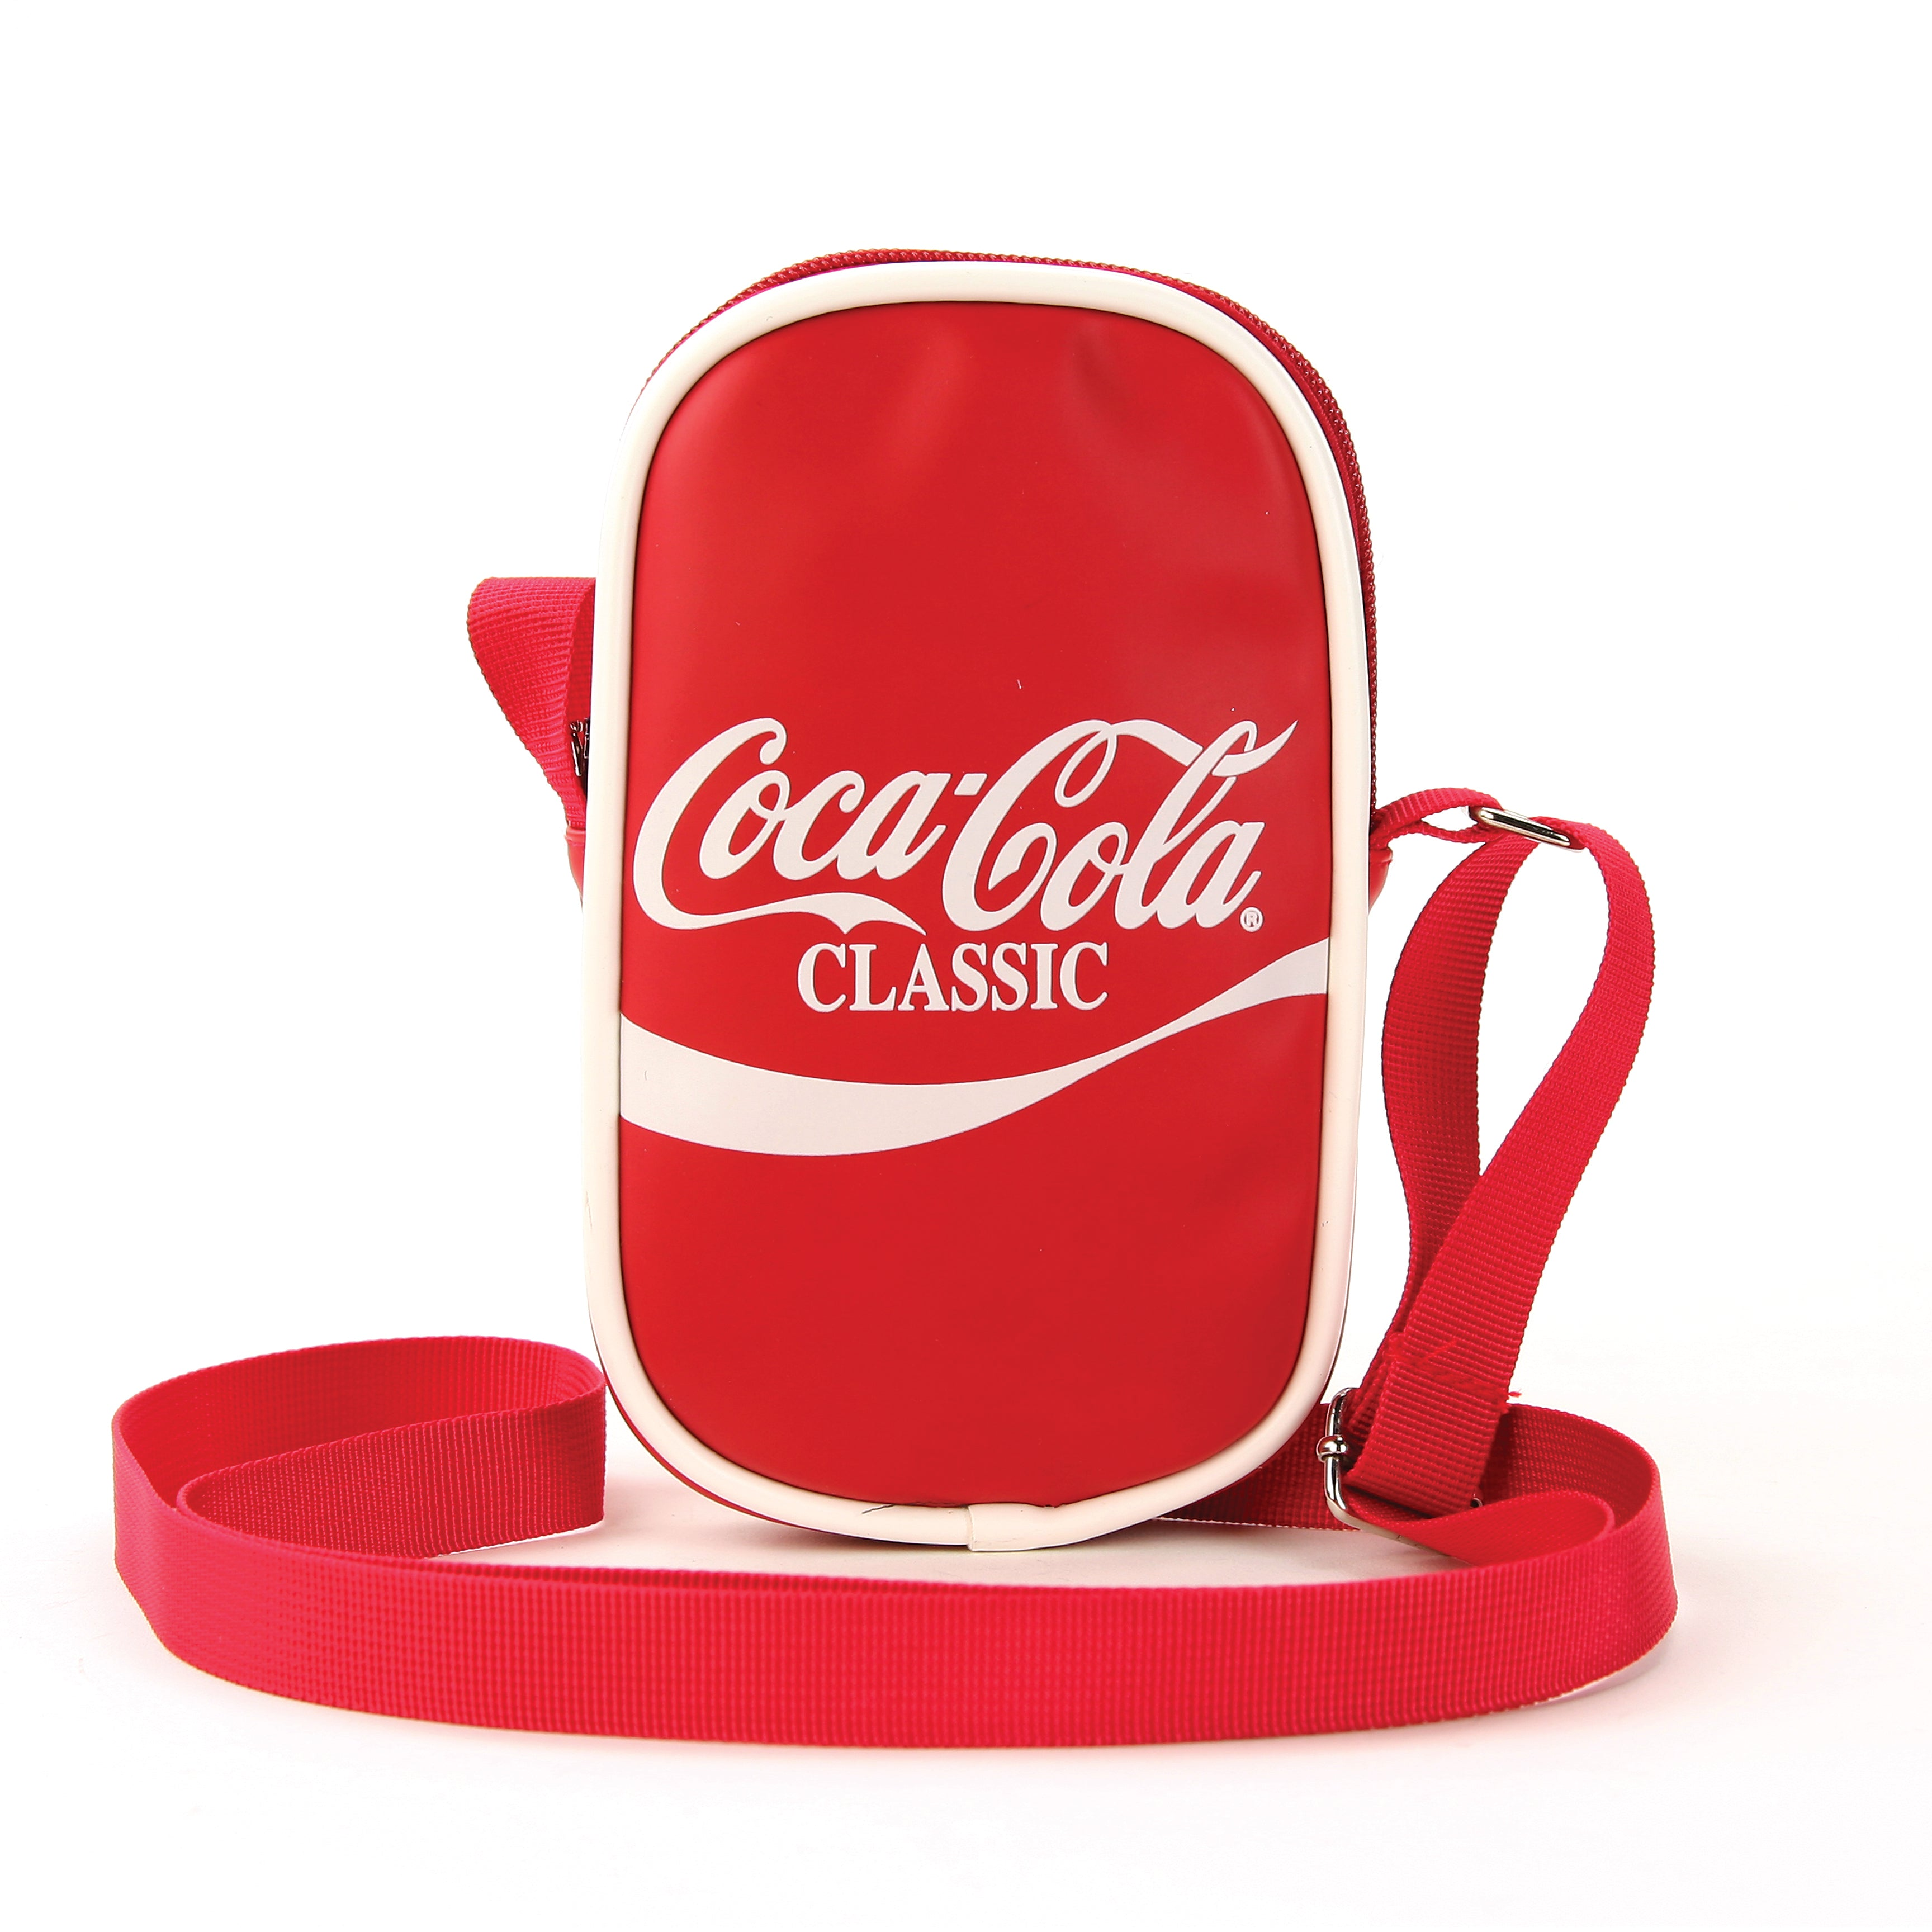 Coca-cola Hero cross body bag frontal view